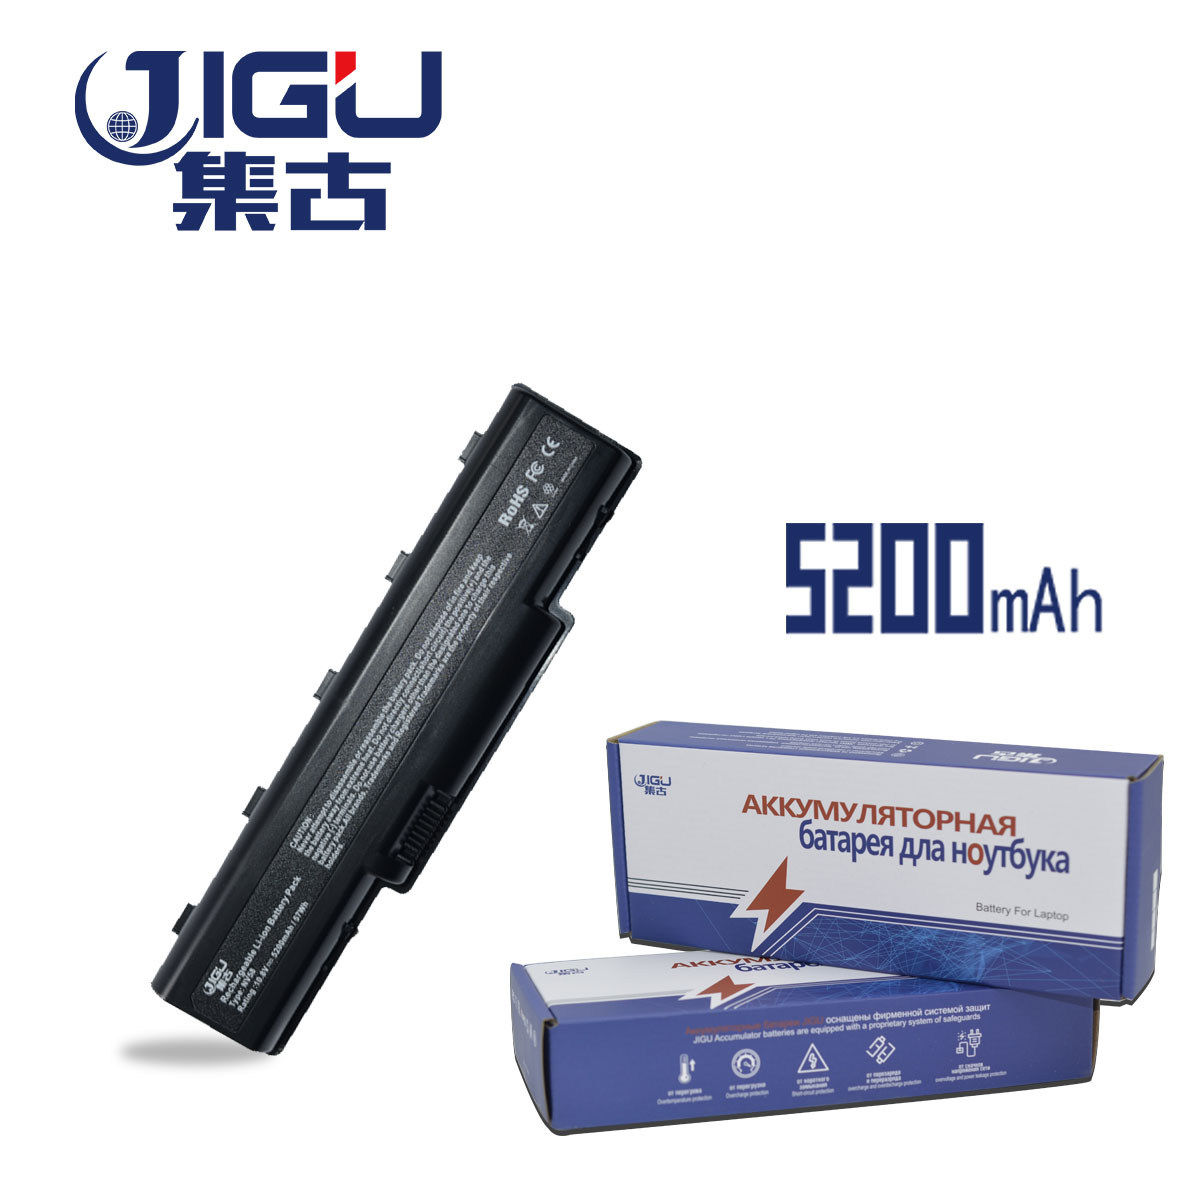 JIGU Laptop Battery AS09A56 AS09A70 As09a41 FOR Acer EMachines E525 E625 E627 E630 E725 G430 G625 G627 G630 G630G G725 As09a31 raymond weil maestro 2869 stc 65001 page 7